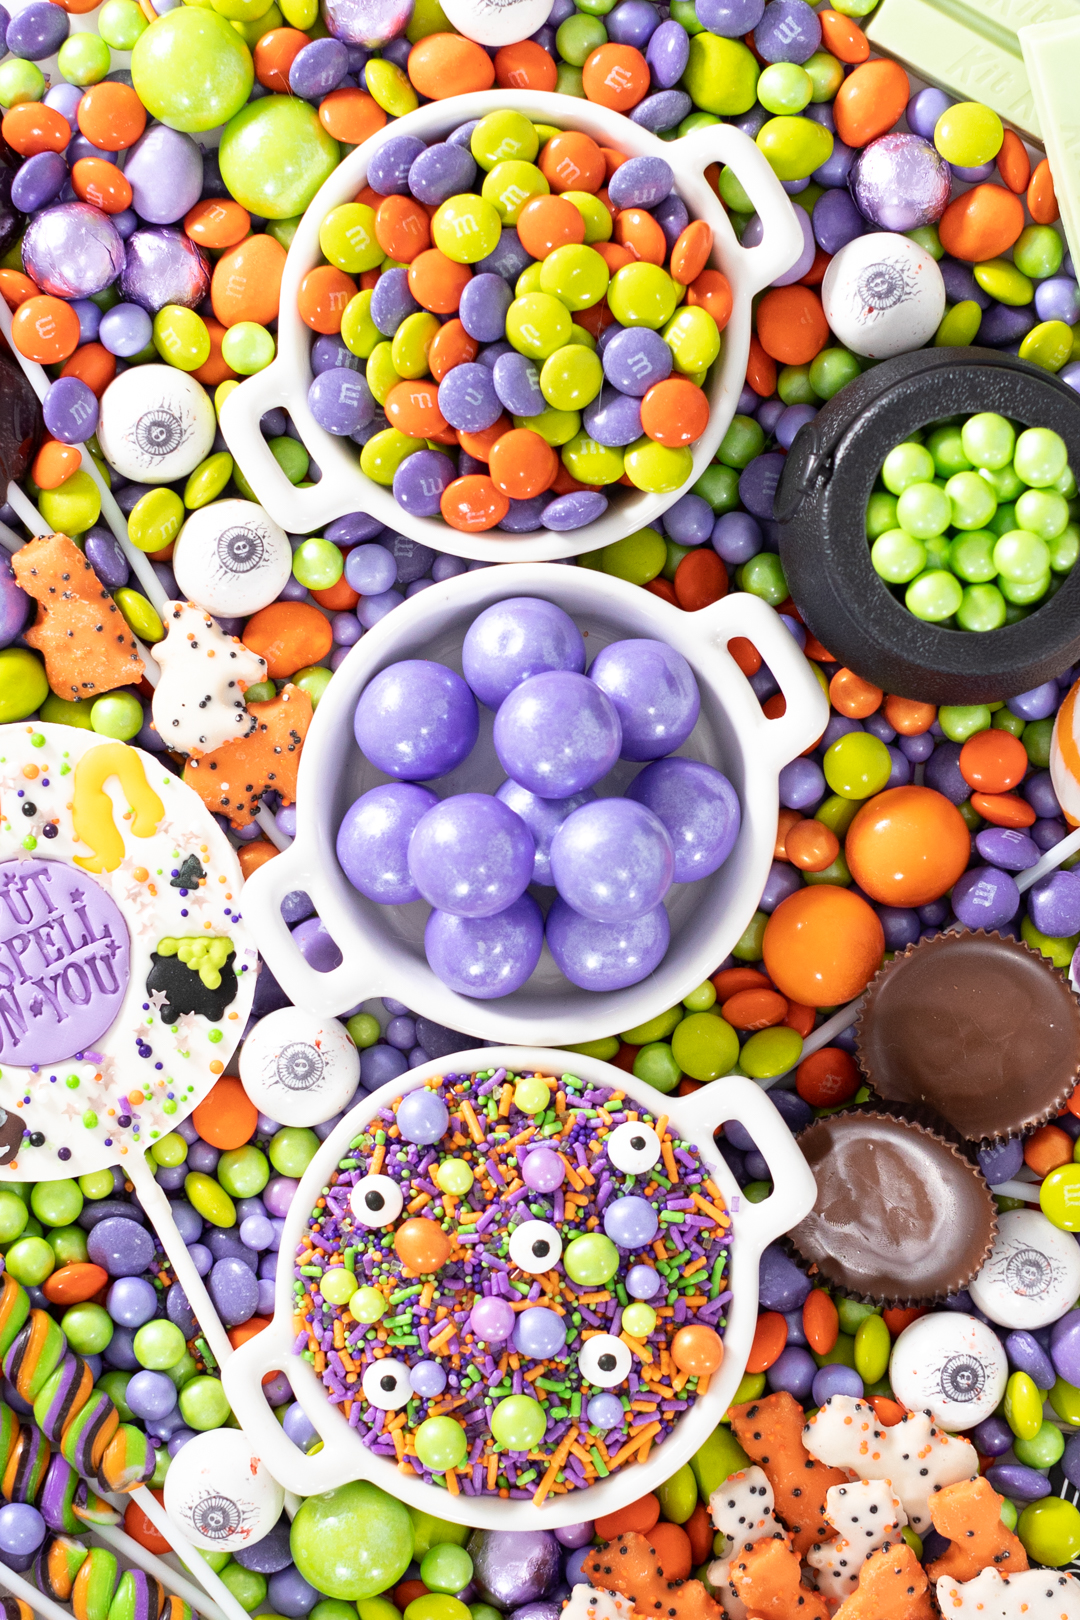 candy up close. halloween sprinkles, gumballs, M&Ms and more.